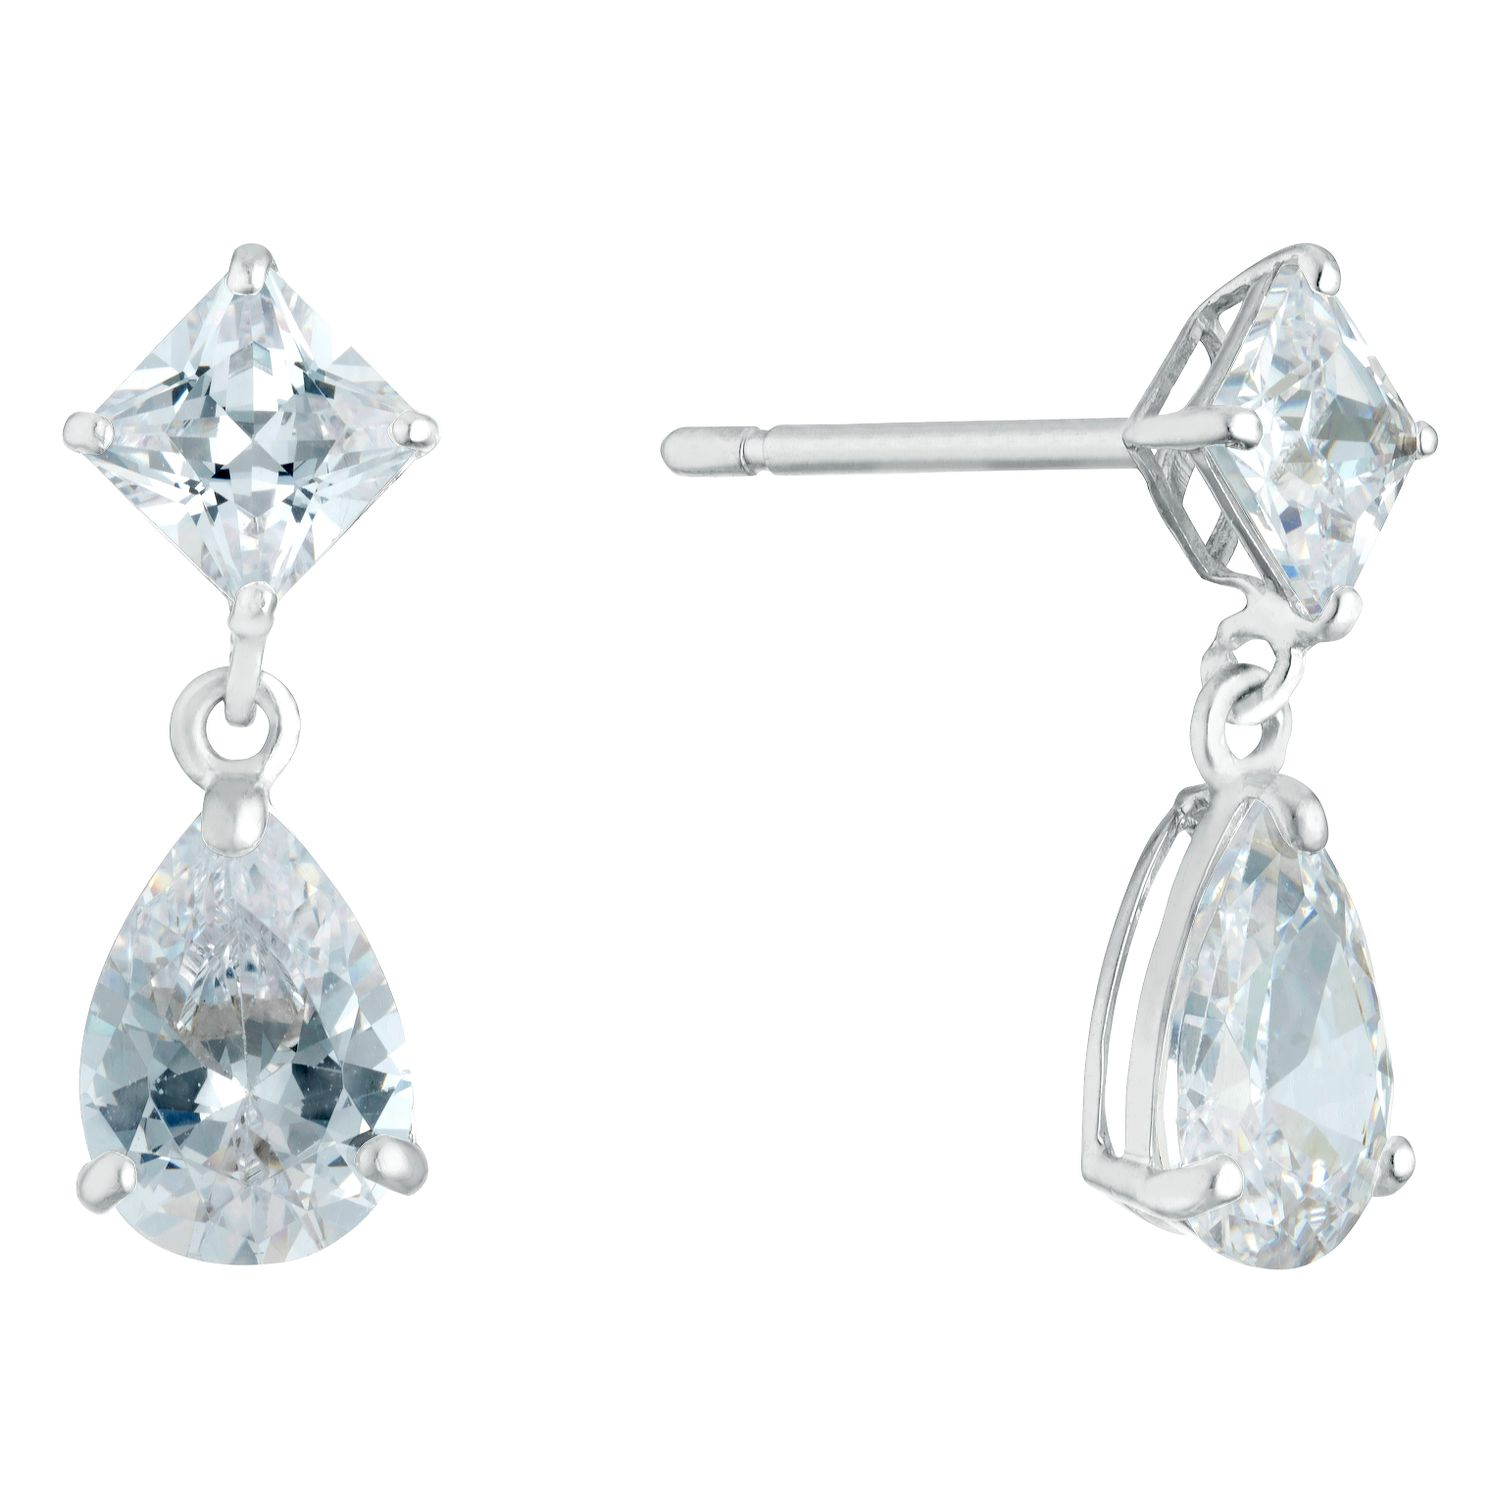 9ct White Gold Cubic Zirconia Teardrop Square Drop Earrings - Product number 3133095